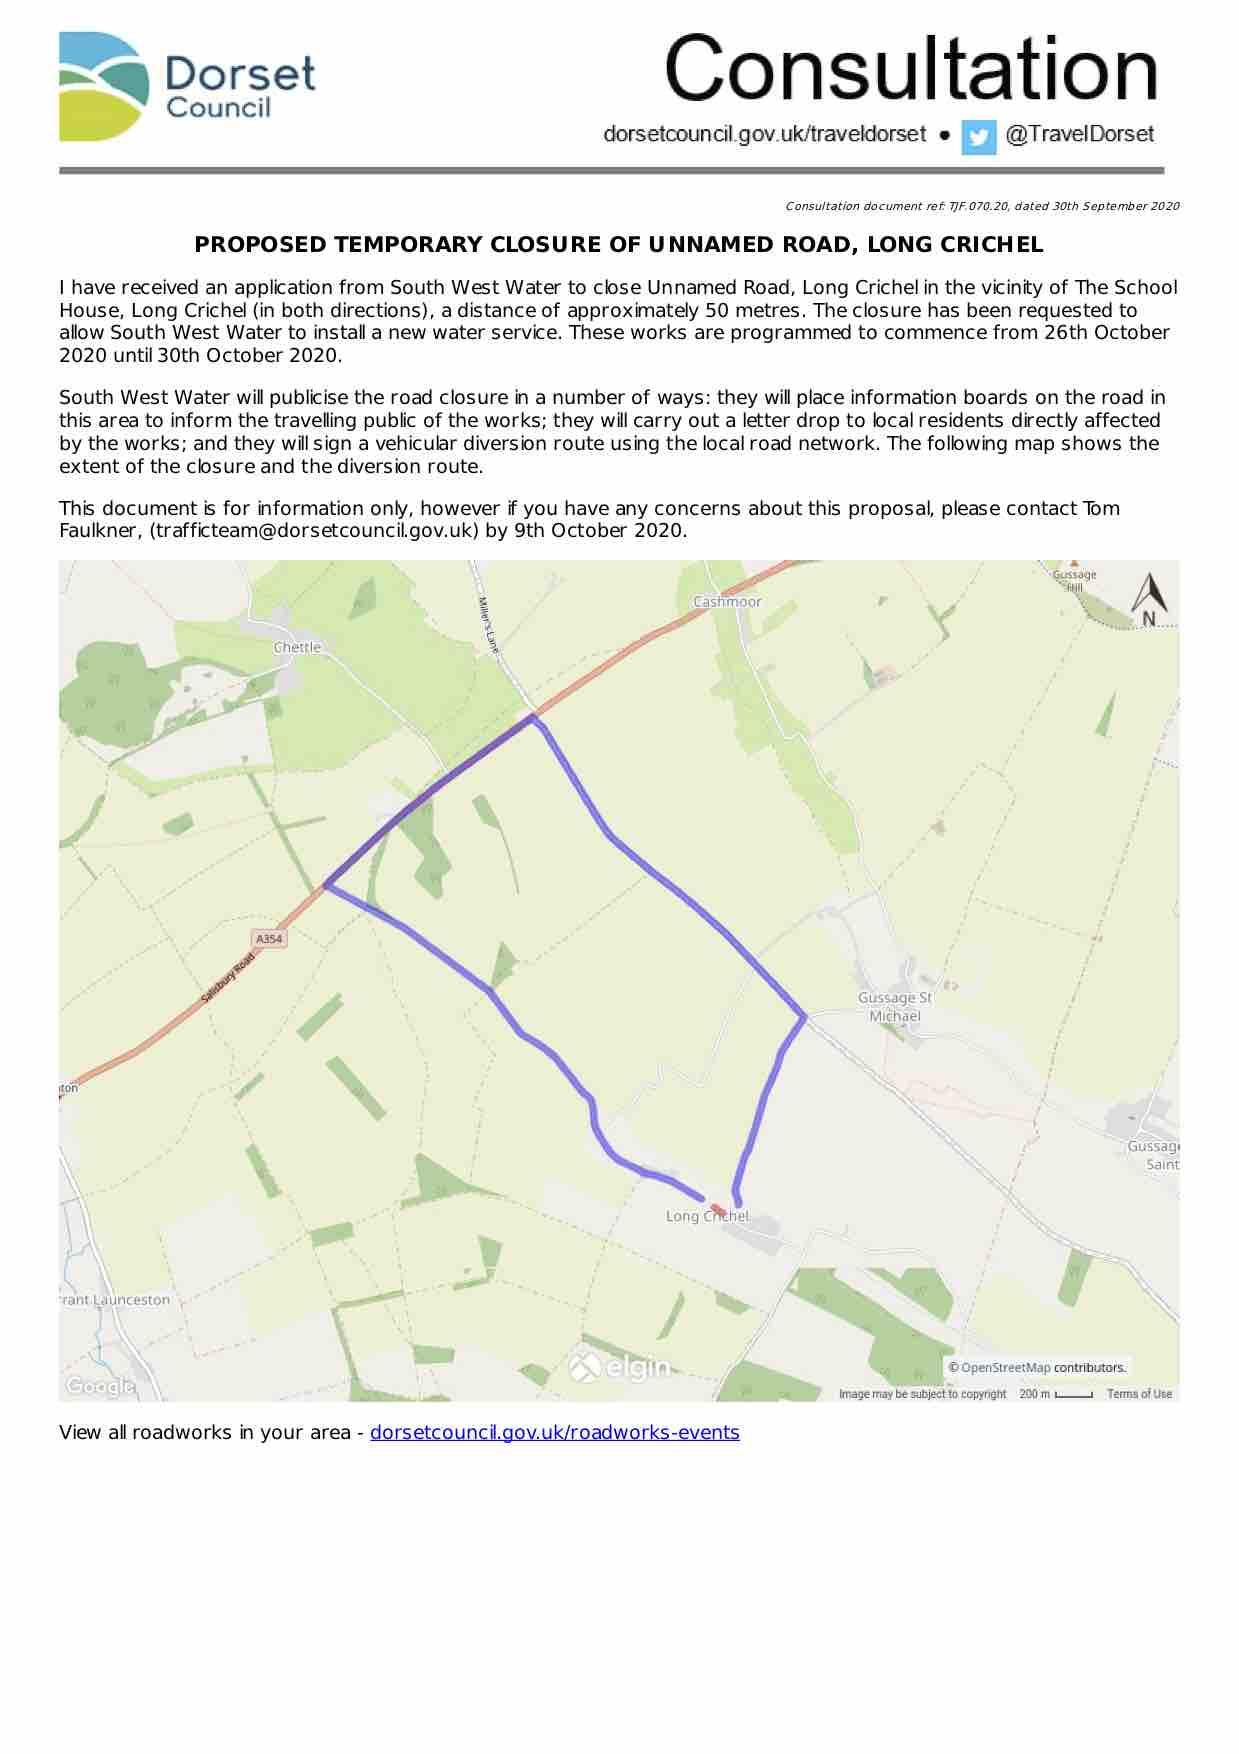 Image version of the consultation document including map of diversion/closure